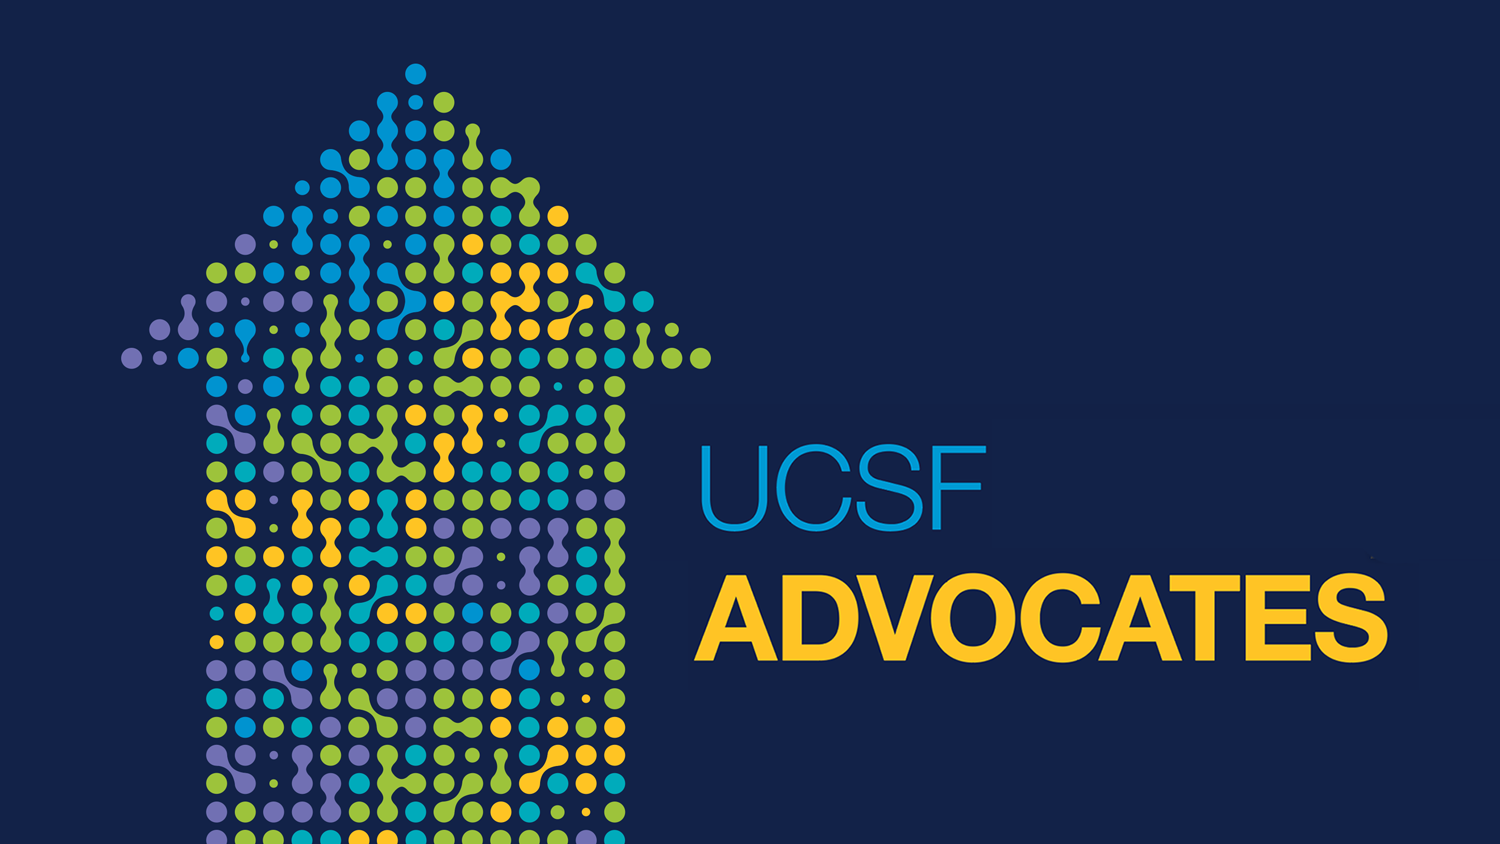 UCSF Advocates graphic